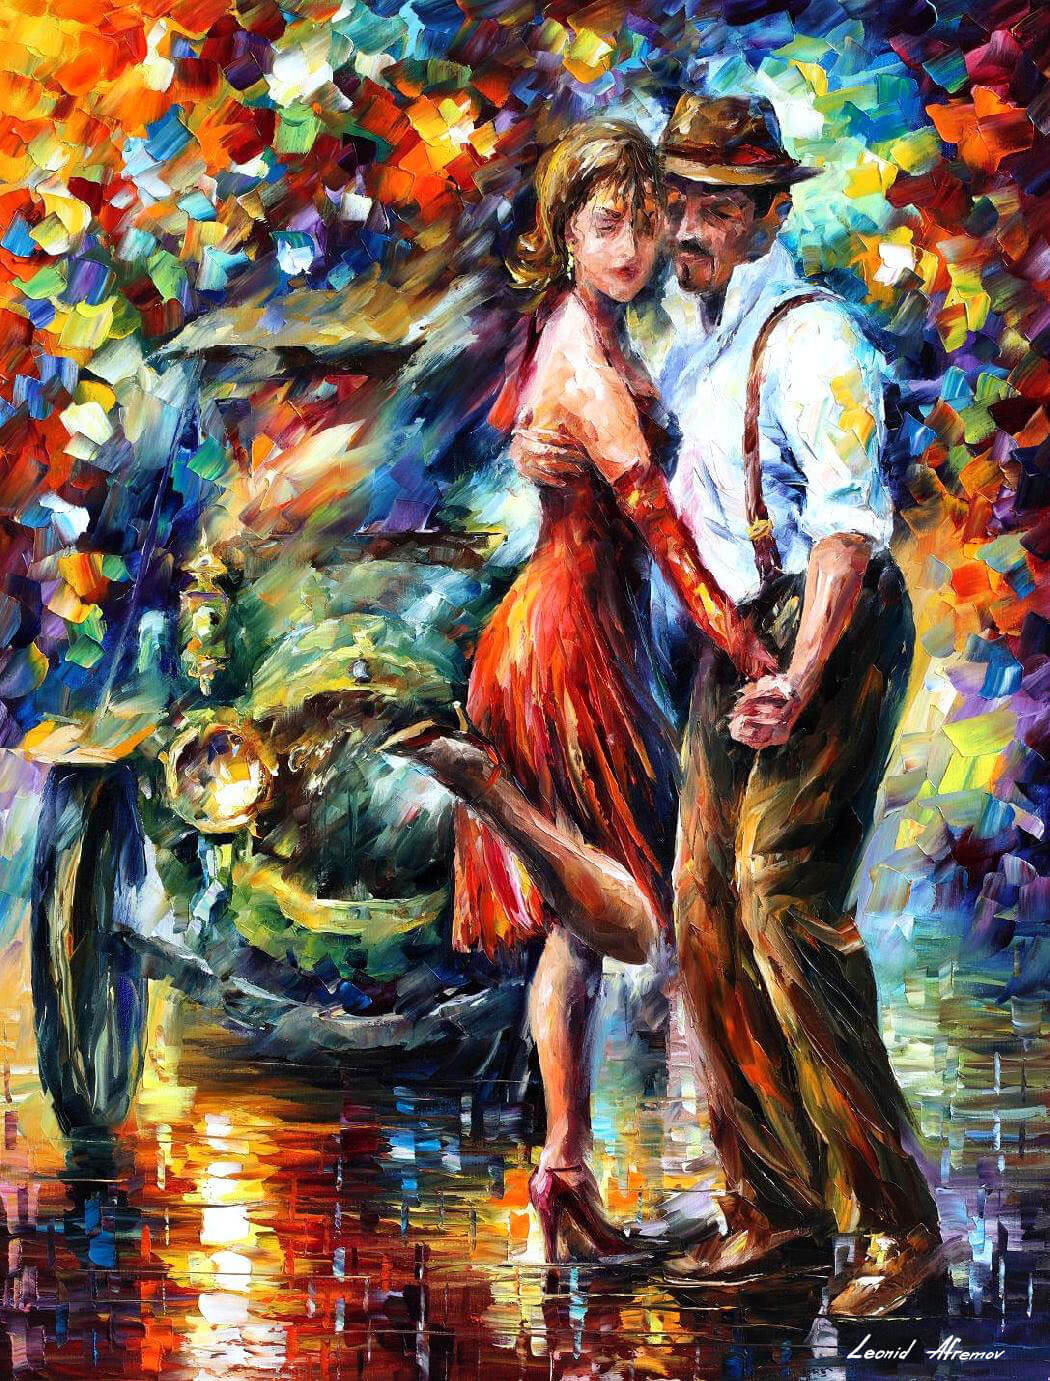 Pinturas Taurinas Modernas Beautiful Tango Palette Knife Oil Painting On Canvas By